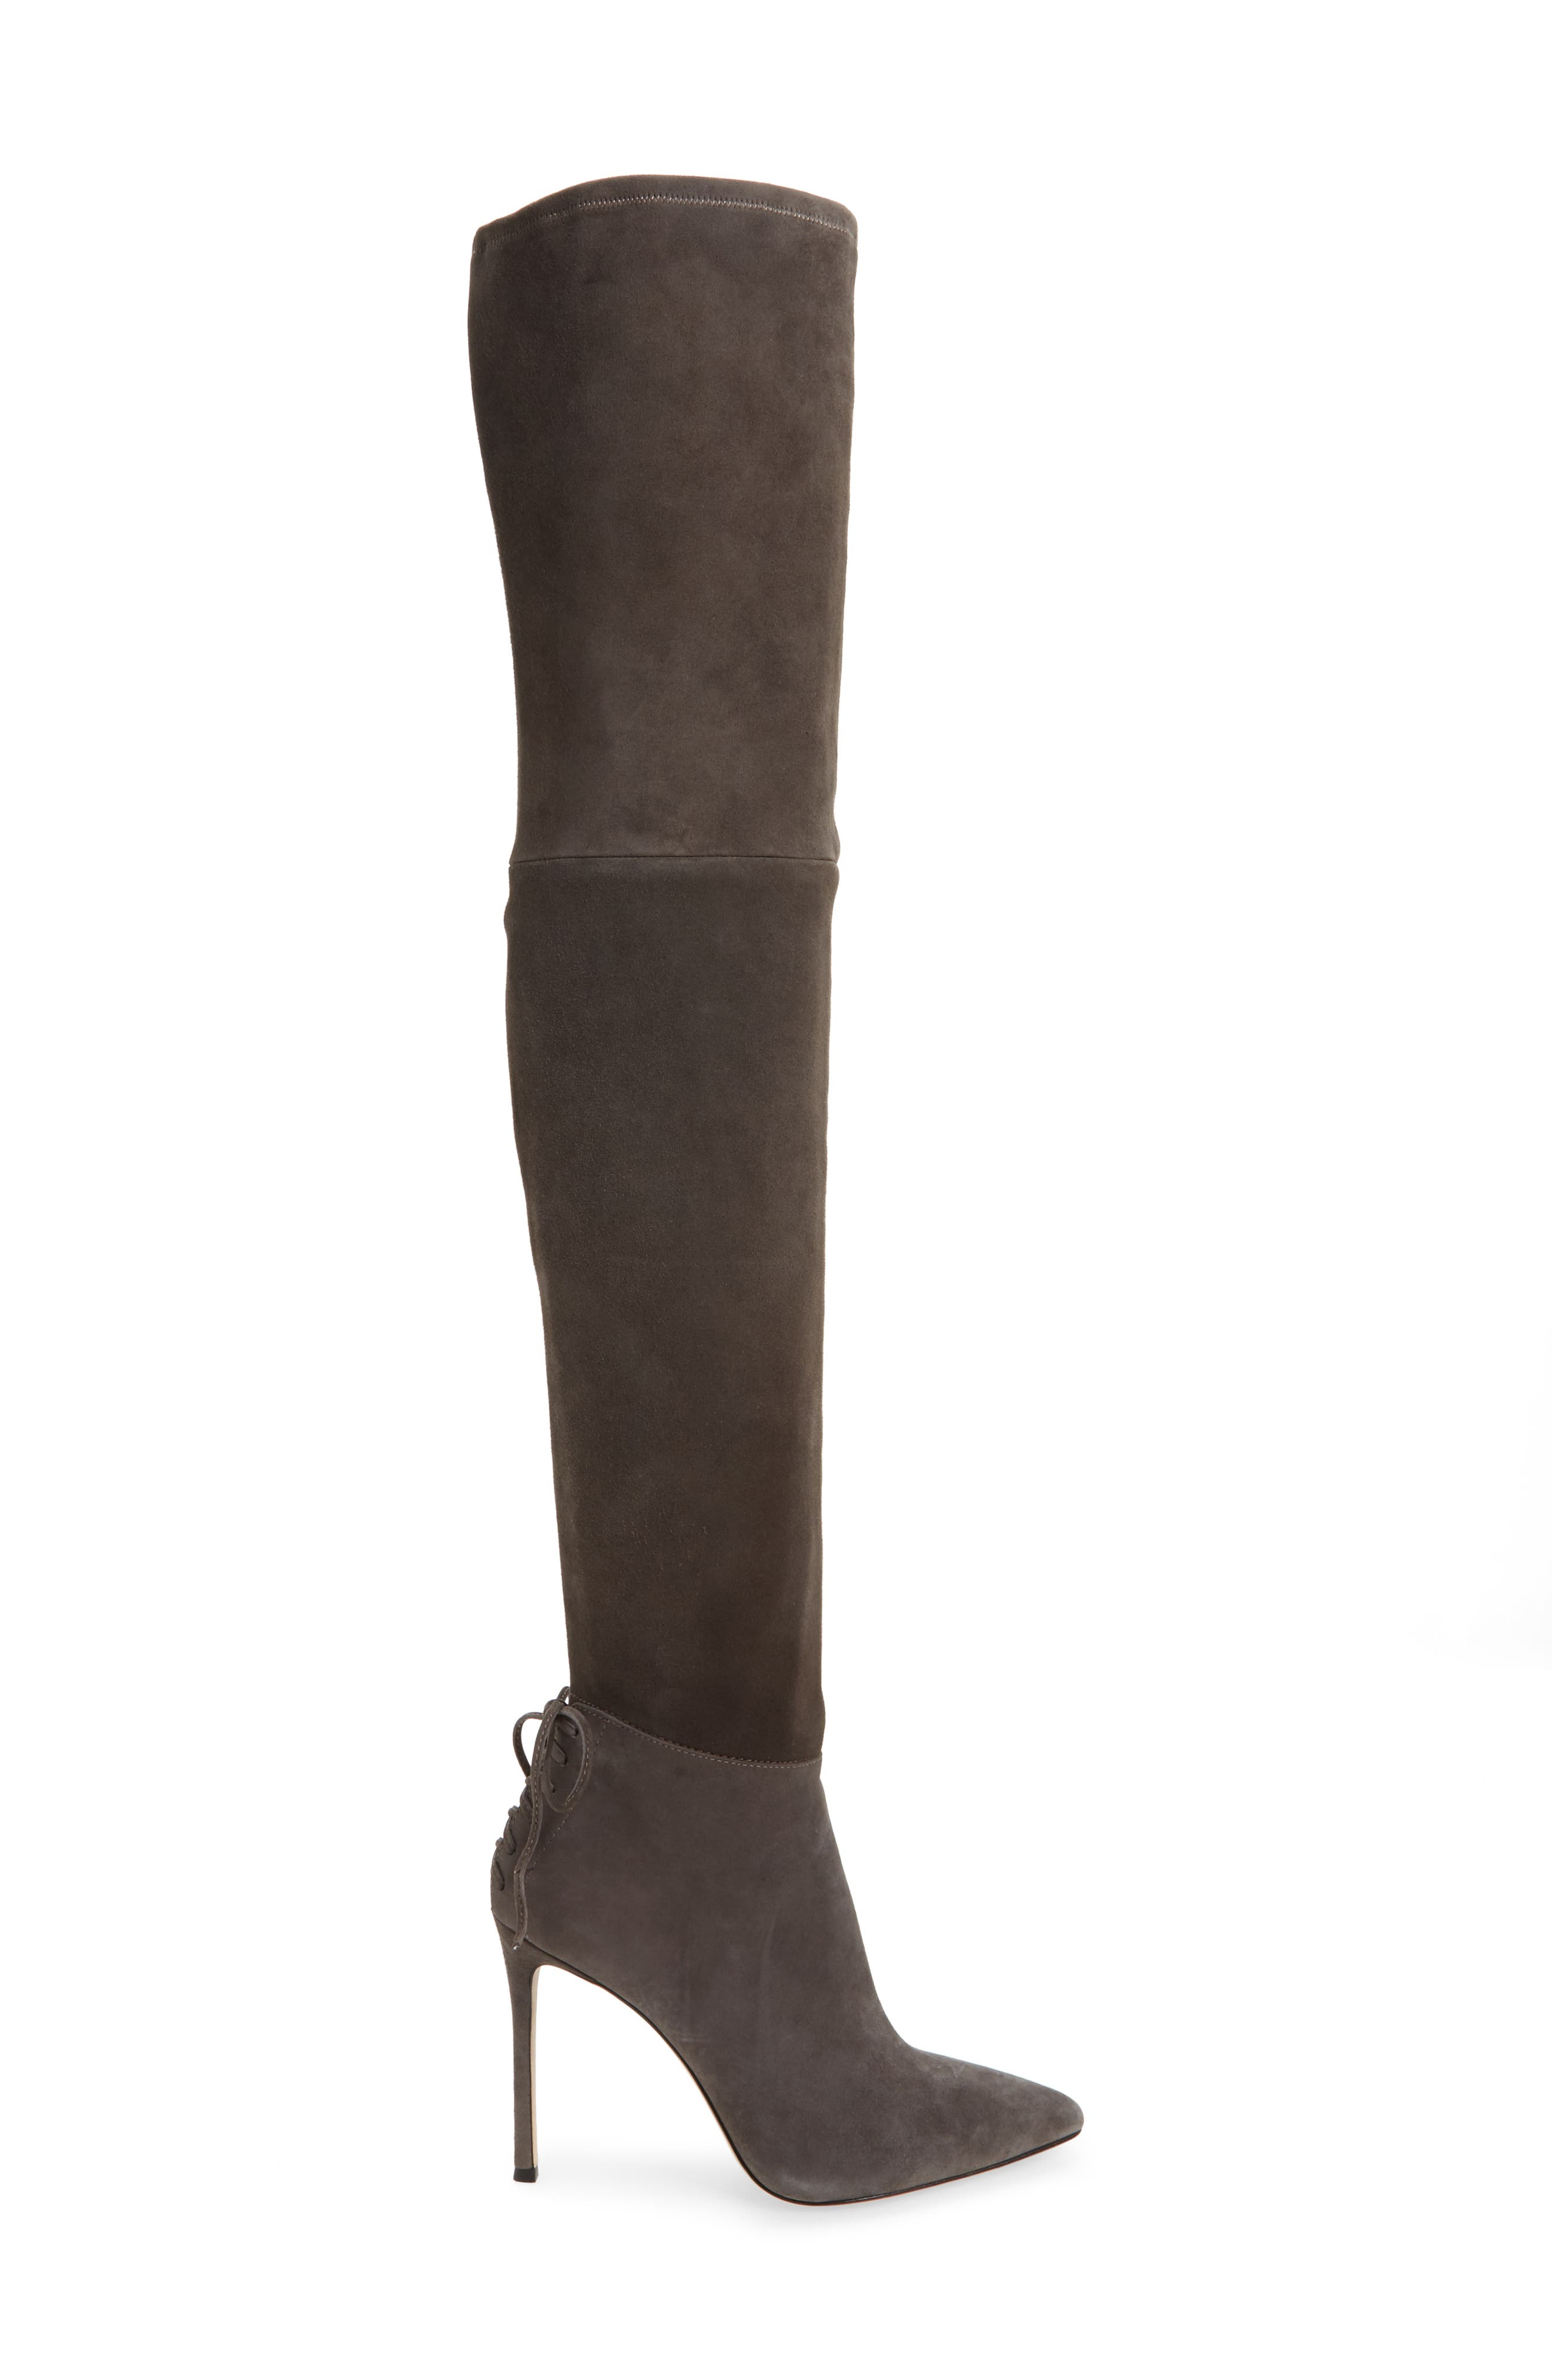 Alternate Image 3  - Pour la Victoire 'Caterina' Over the Knee Boot (Women)